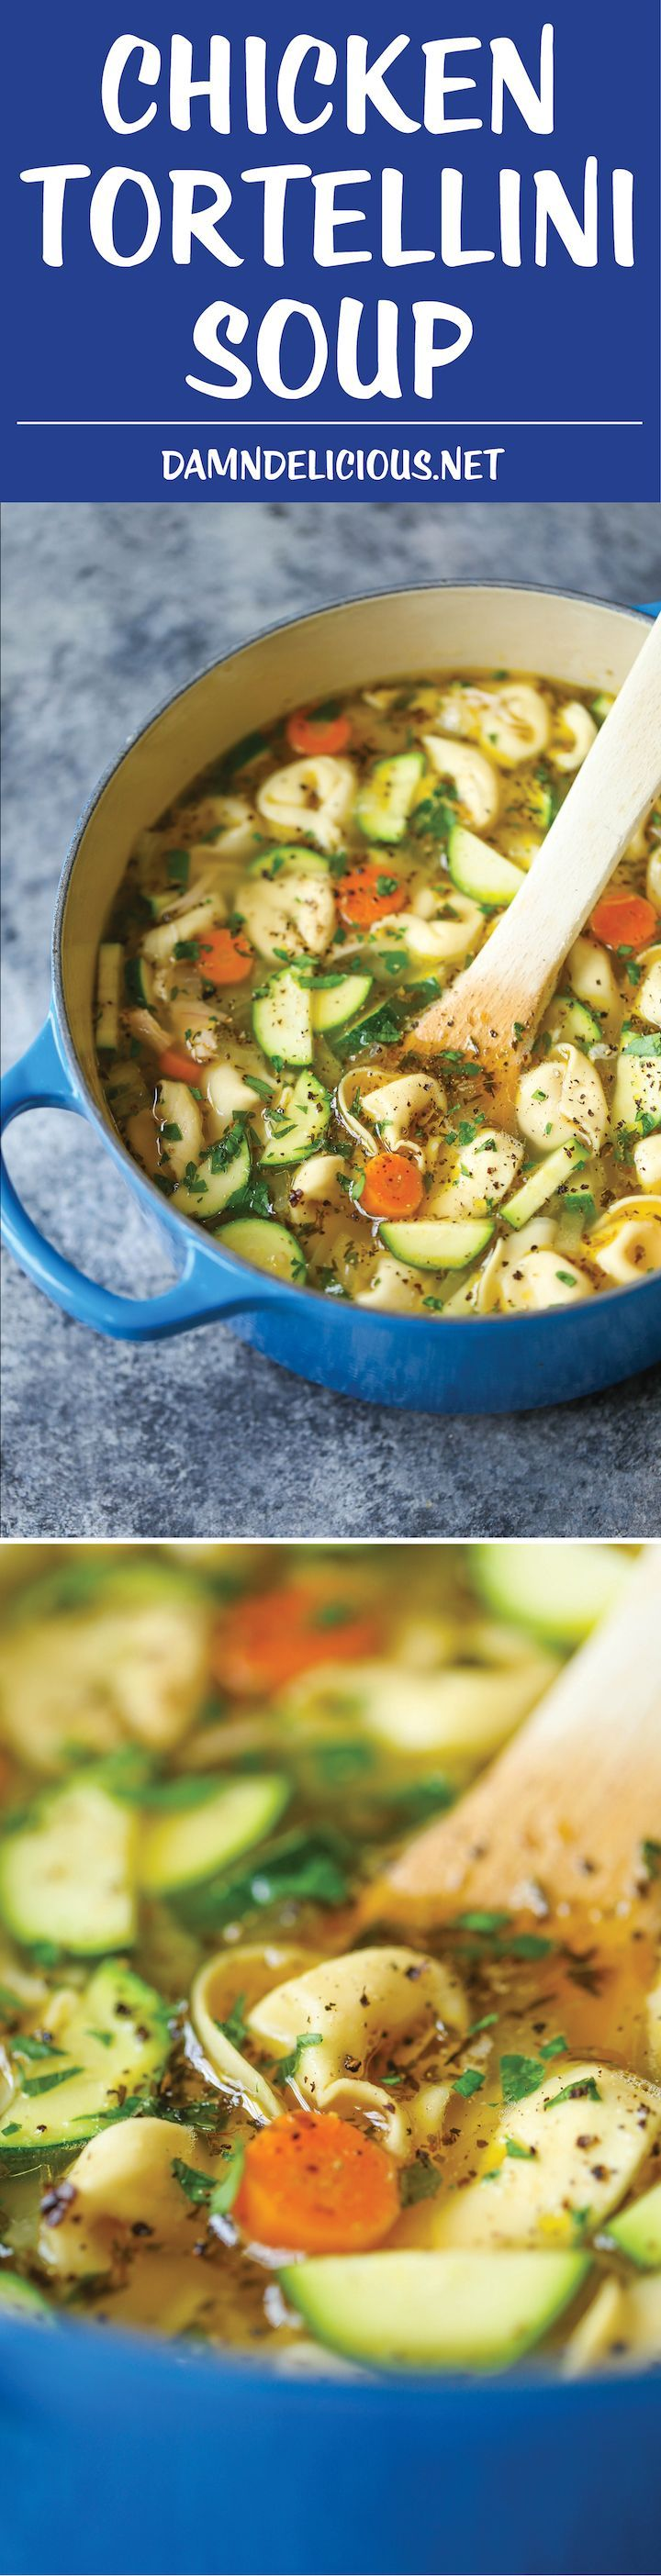 Chicken Tortellini Soup - Everyone's favorite chicken noodle soup gets an upgrade using cheesy tortellini! So comforting and easy to make for any night!